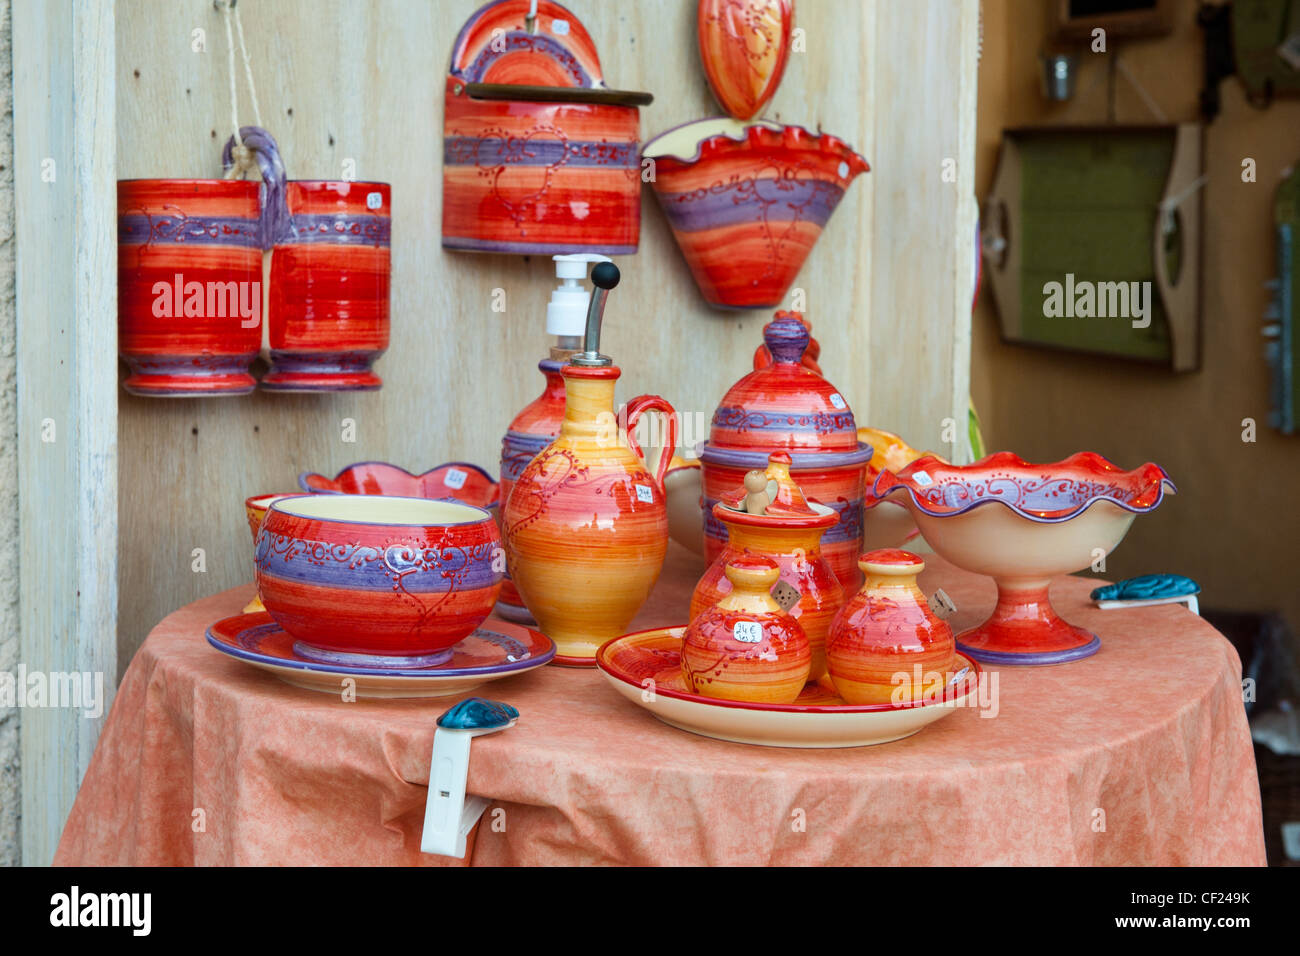 shop with colorful handmade pottery outdoor - Stock Image